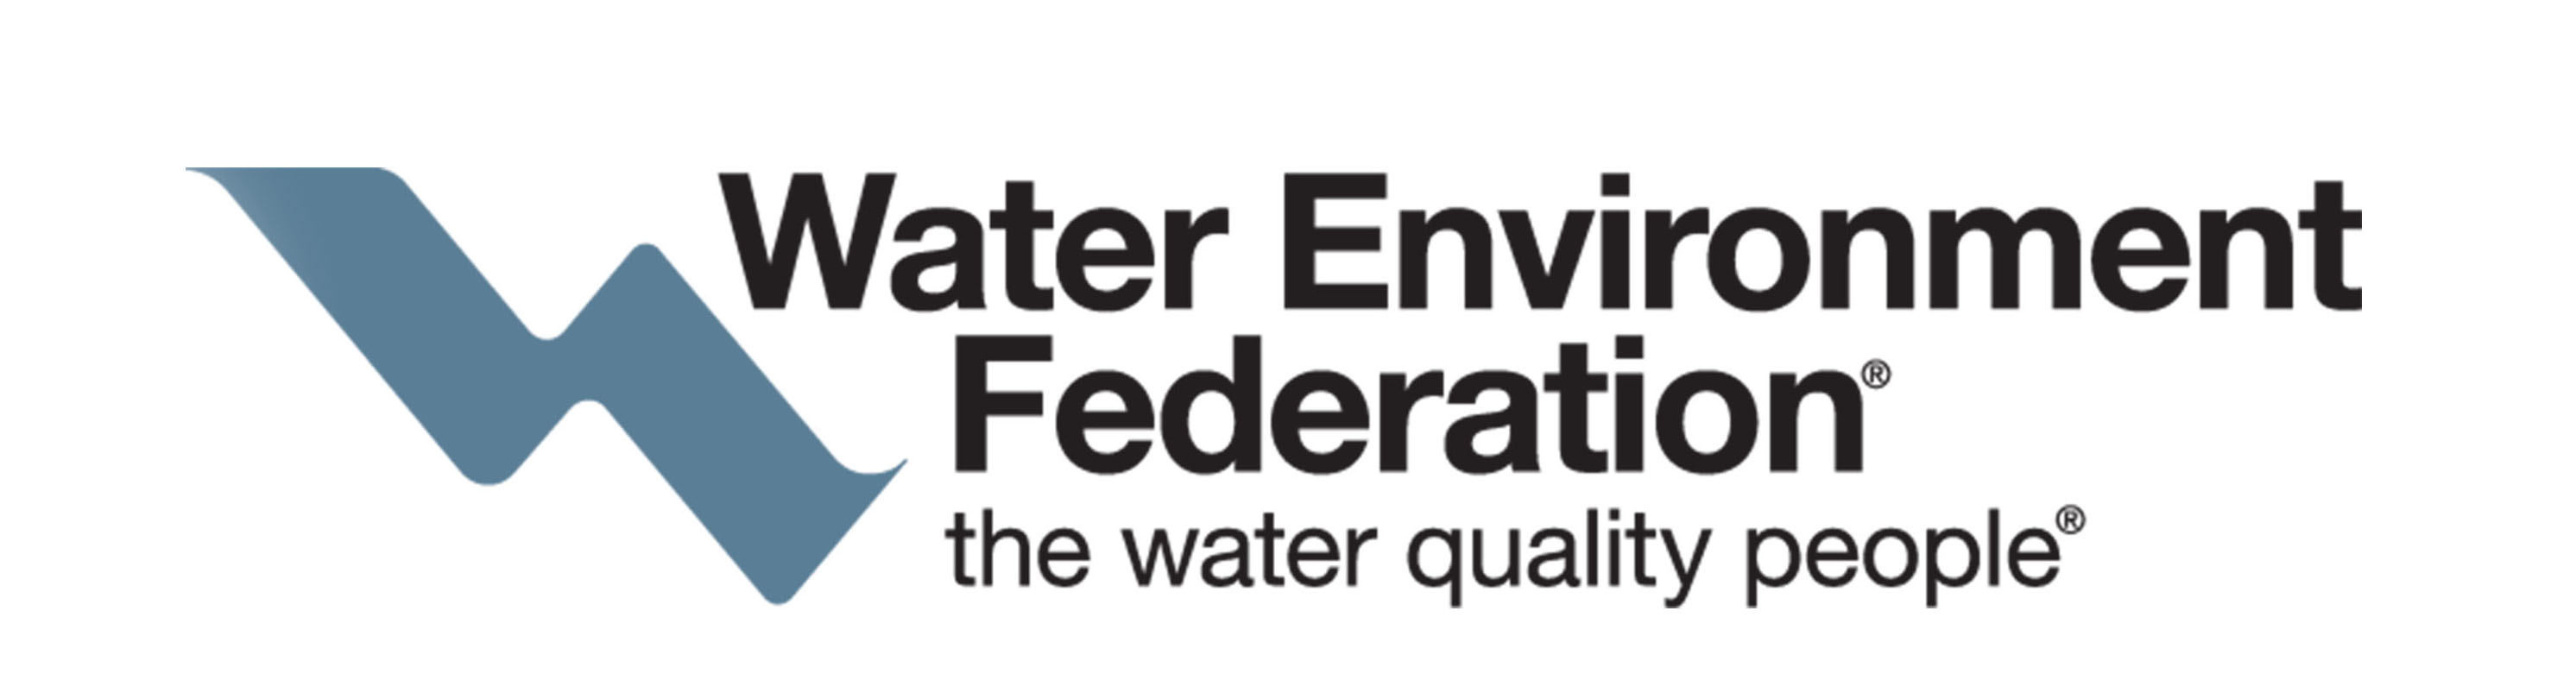 Water Environment Federation Logo (the water quality people)